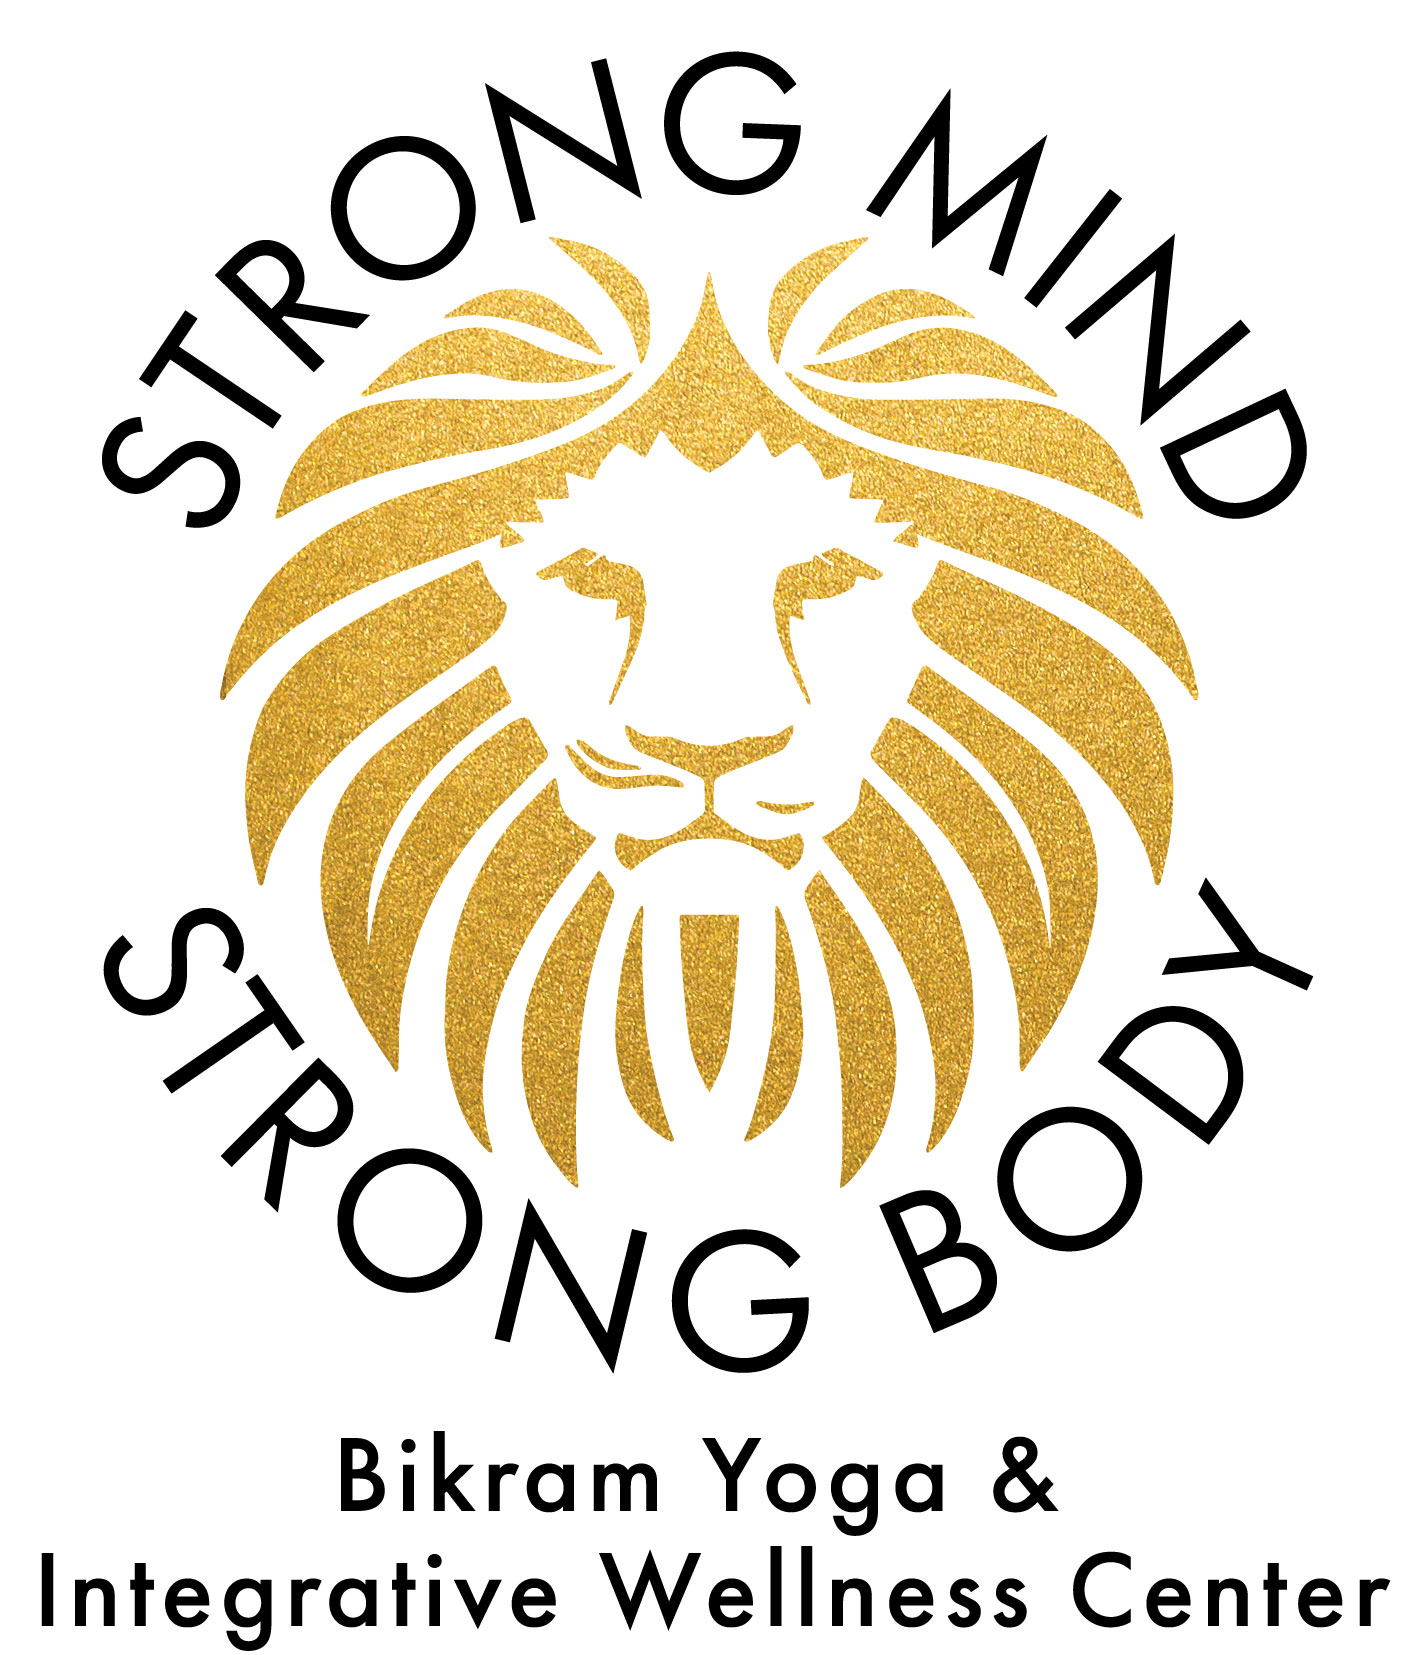 Bikram Yoga Williston & Integrative Wellness Center